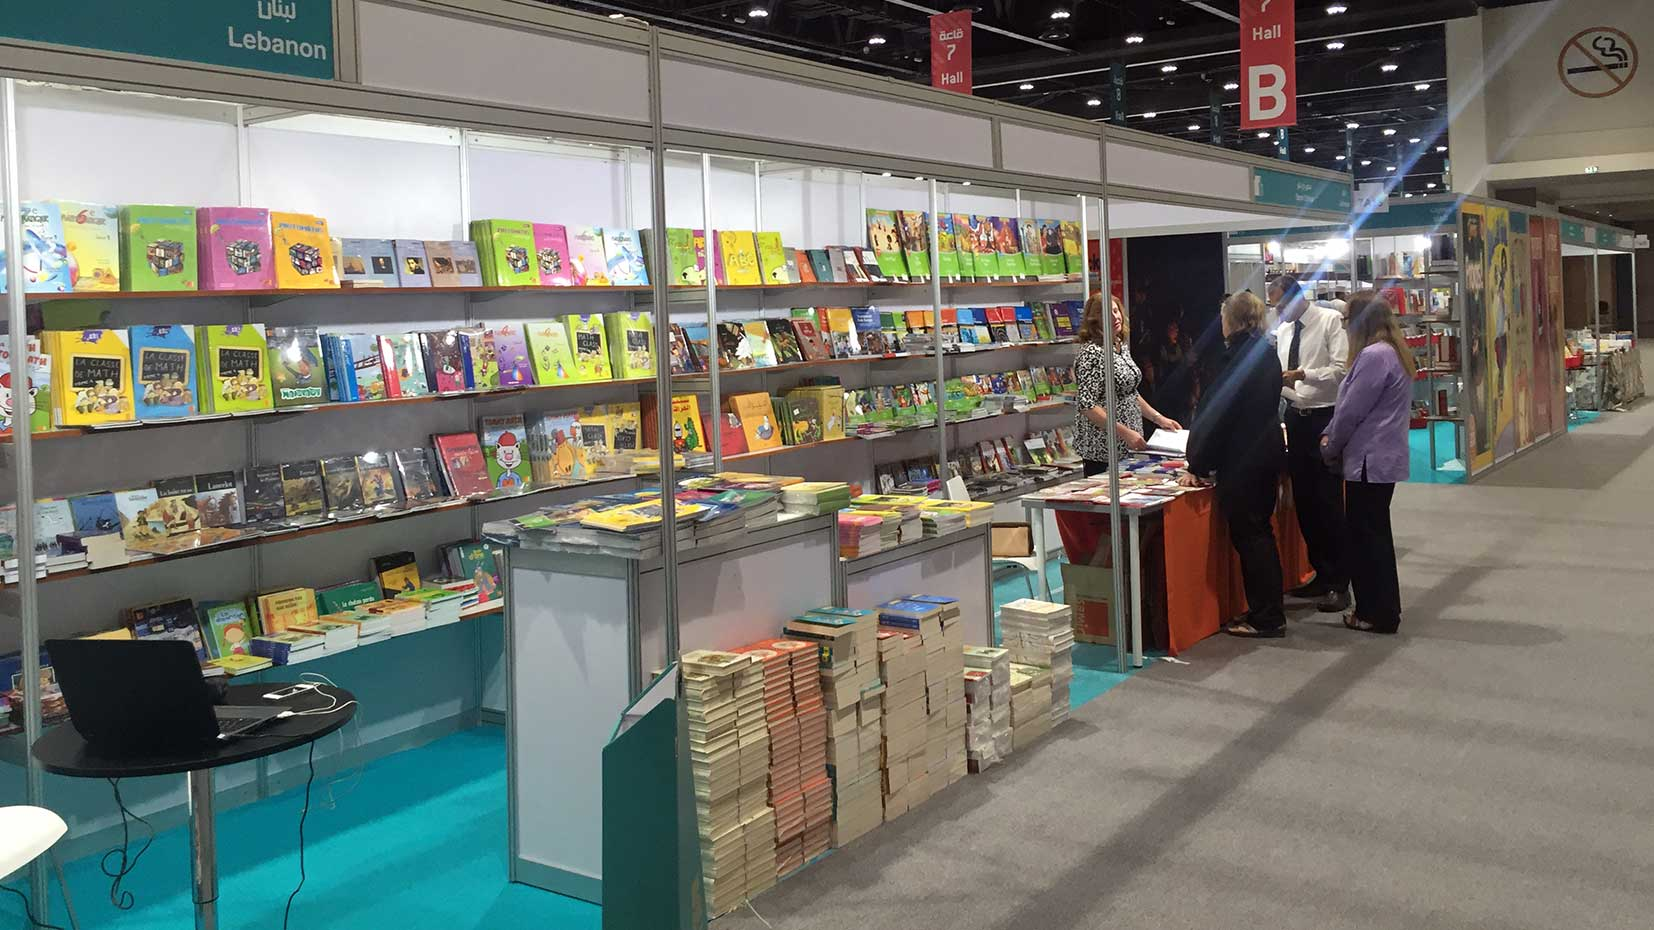 Samir-2016-04-27-Abu-Dhabi-Book-Fair-01